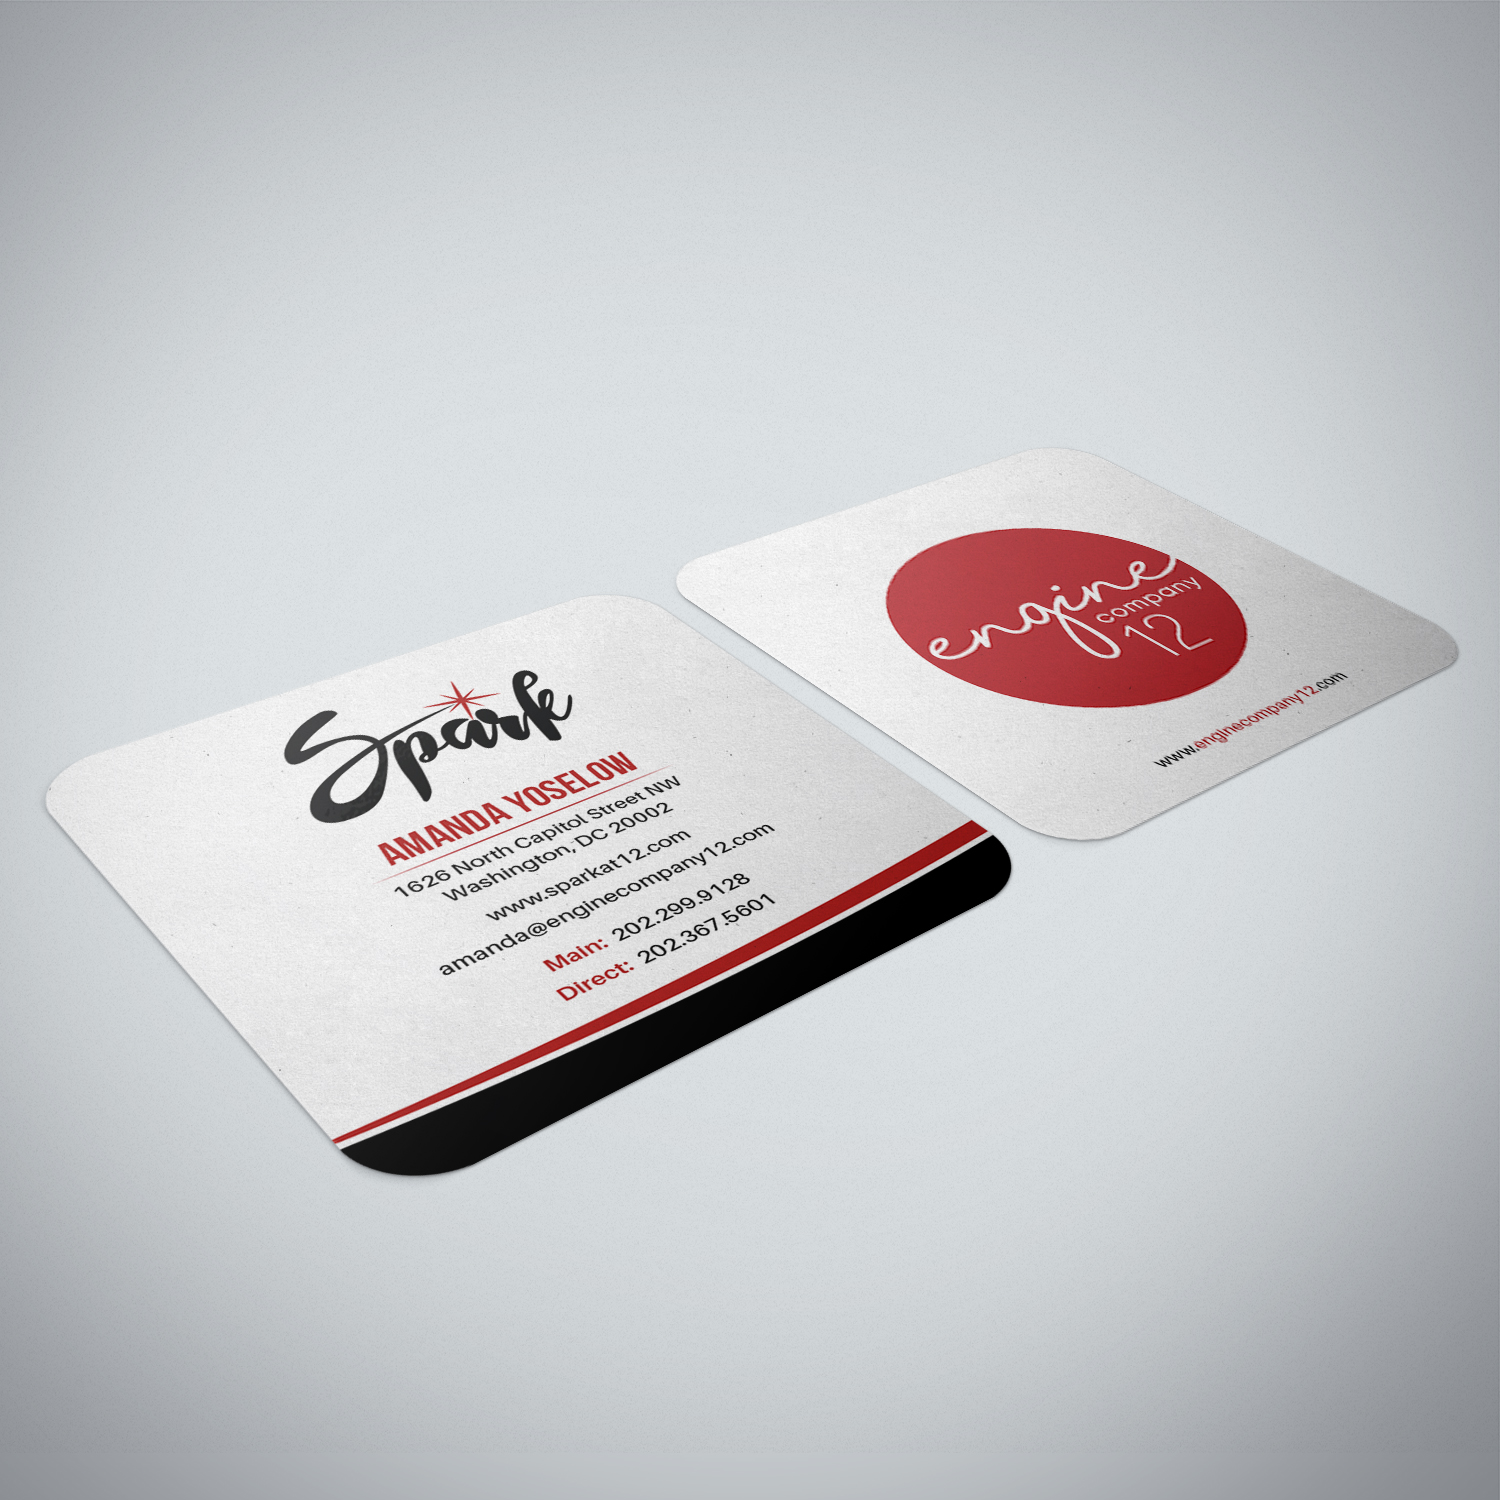 Business business card design for a company by arnold 90 design business business card design for a company in united states design 17445782 reheart Gallery